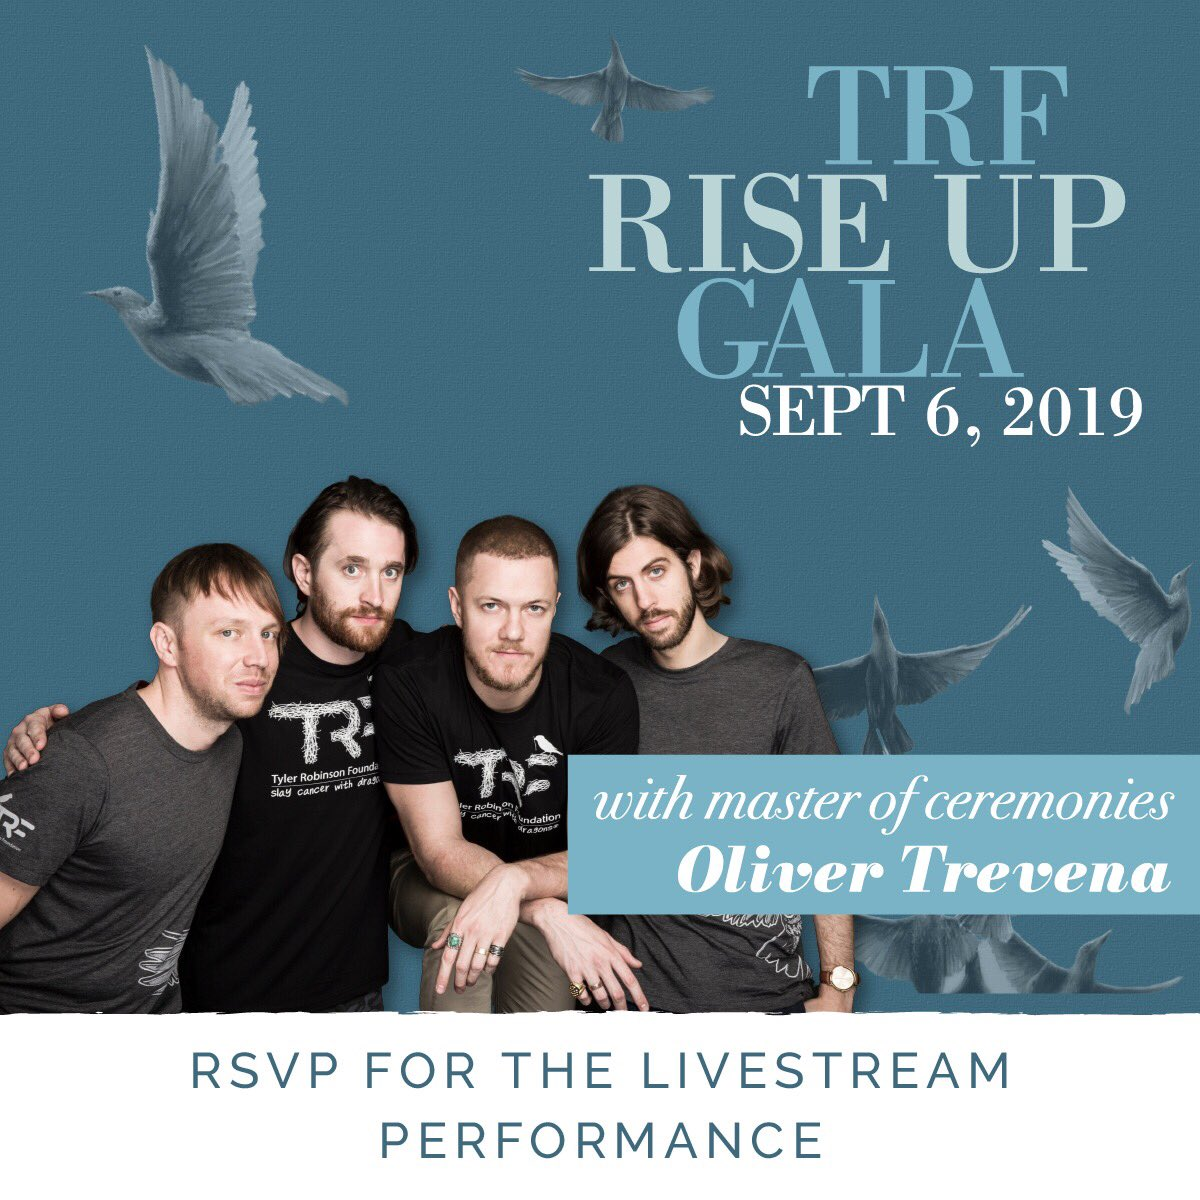 tune in tonight at 9:30pm pst to catch the livestream of our performance at the RISE UP Gala benefiting @TRFdotORG. TRF supports pediatric cancer families by providing grants to offset their basic life expenses, so they can focus on what matters most. bit.ly/2019GalaLivest…